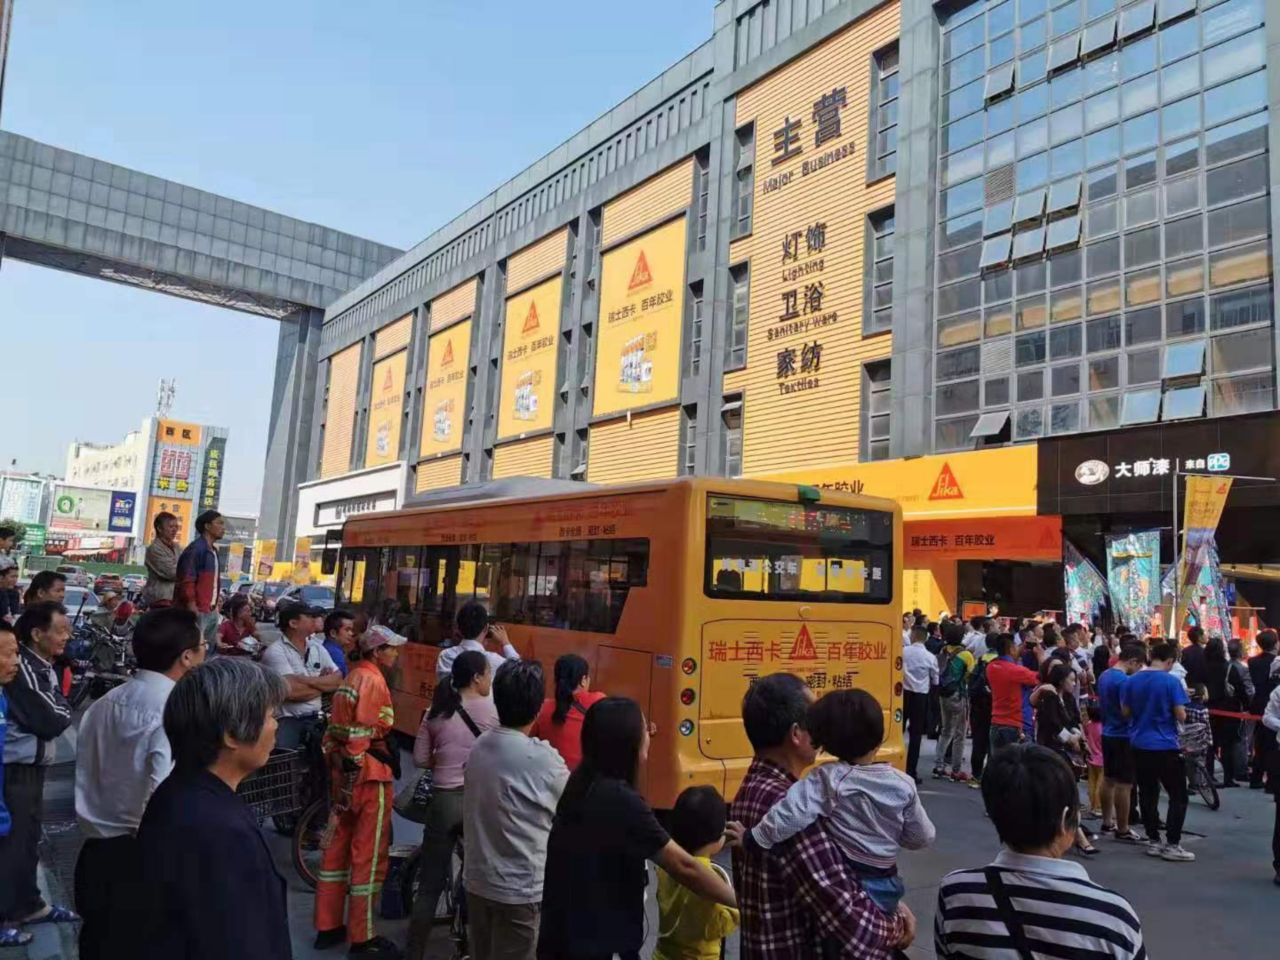 Sika branded bus in China